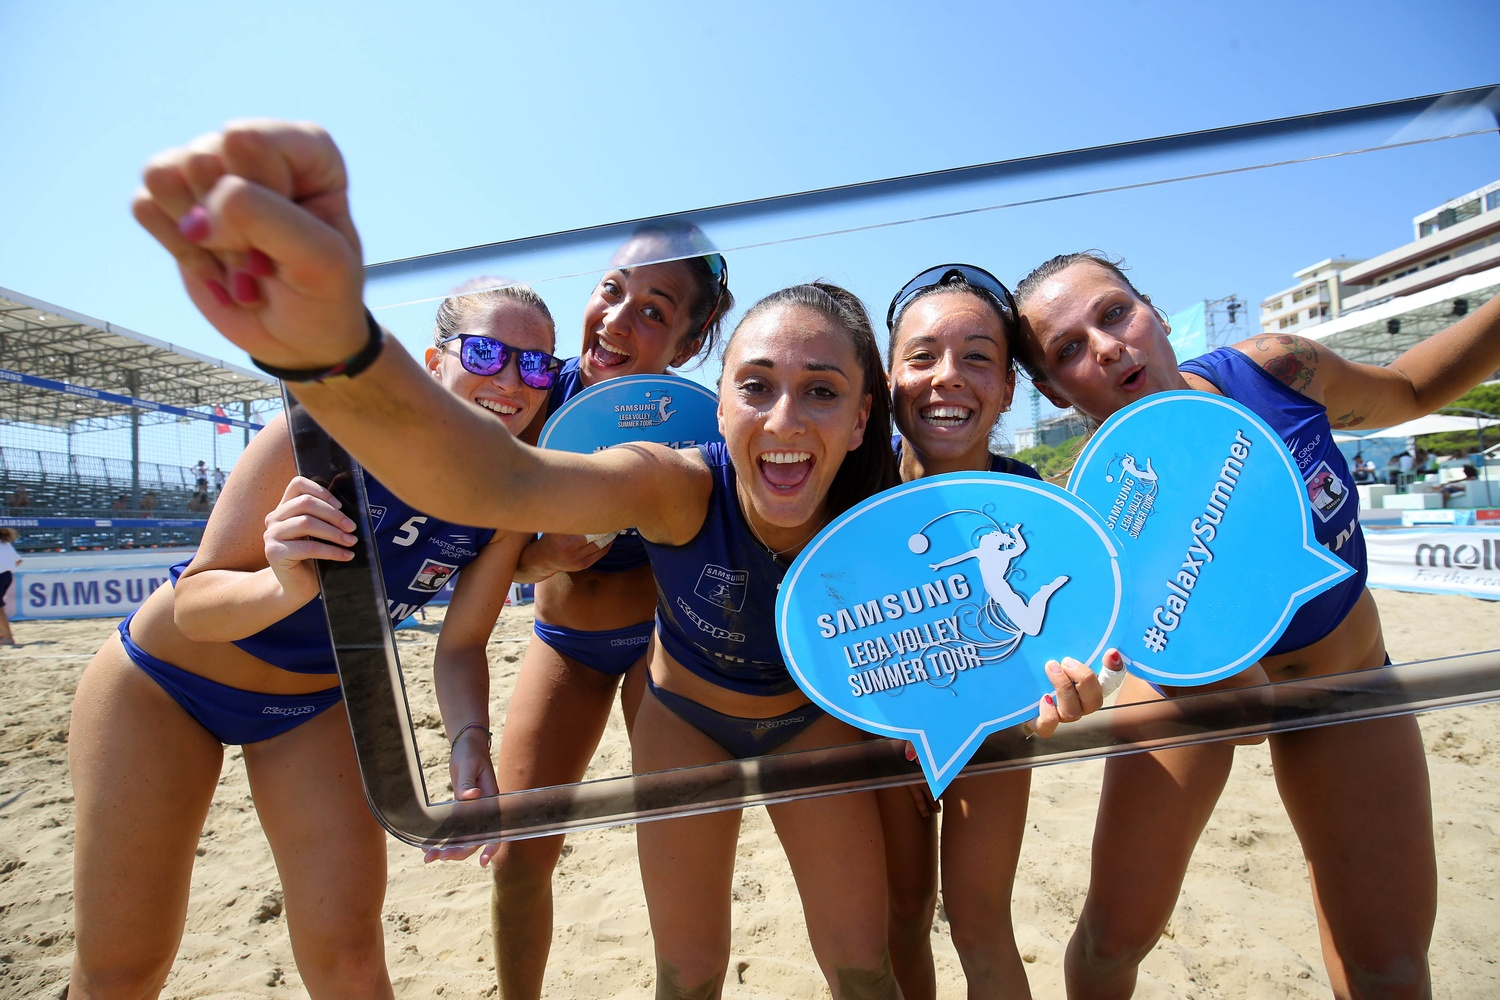 Foto di Samsung Lega Volley Summer Tour 2018